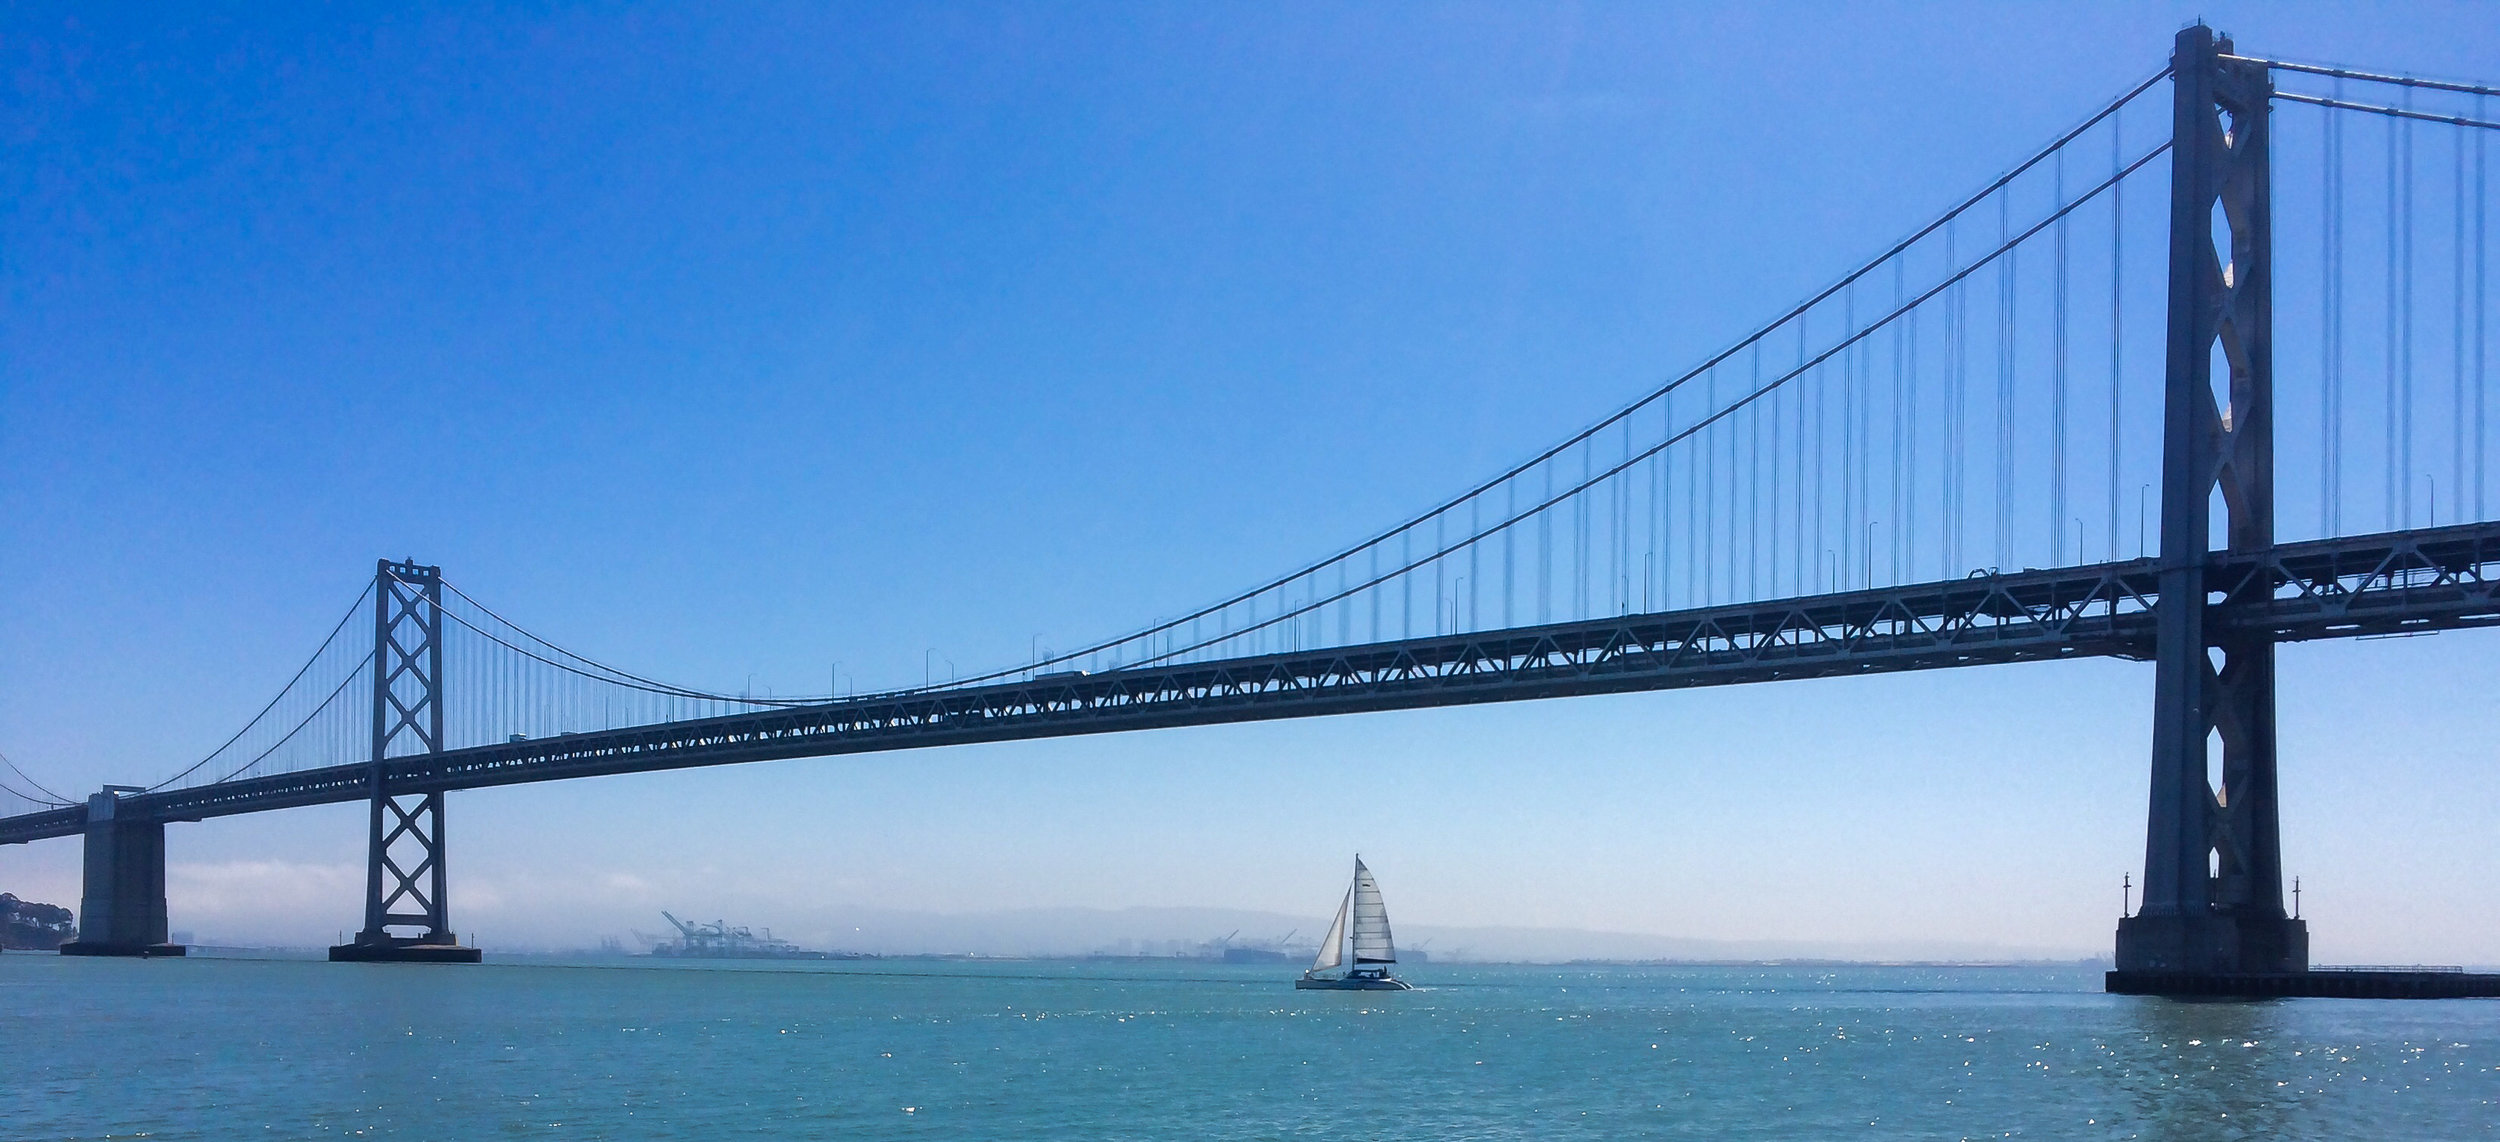 Sailboats and the Mission Trail pass under the Bay Bridge.